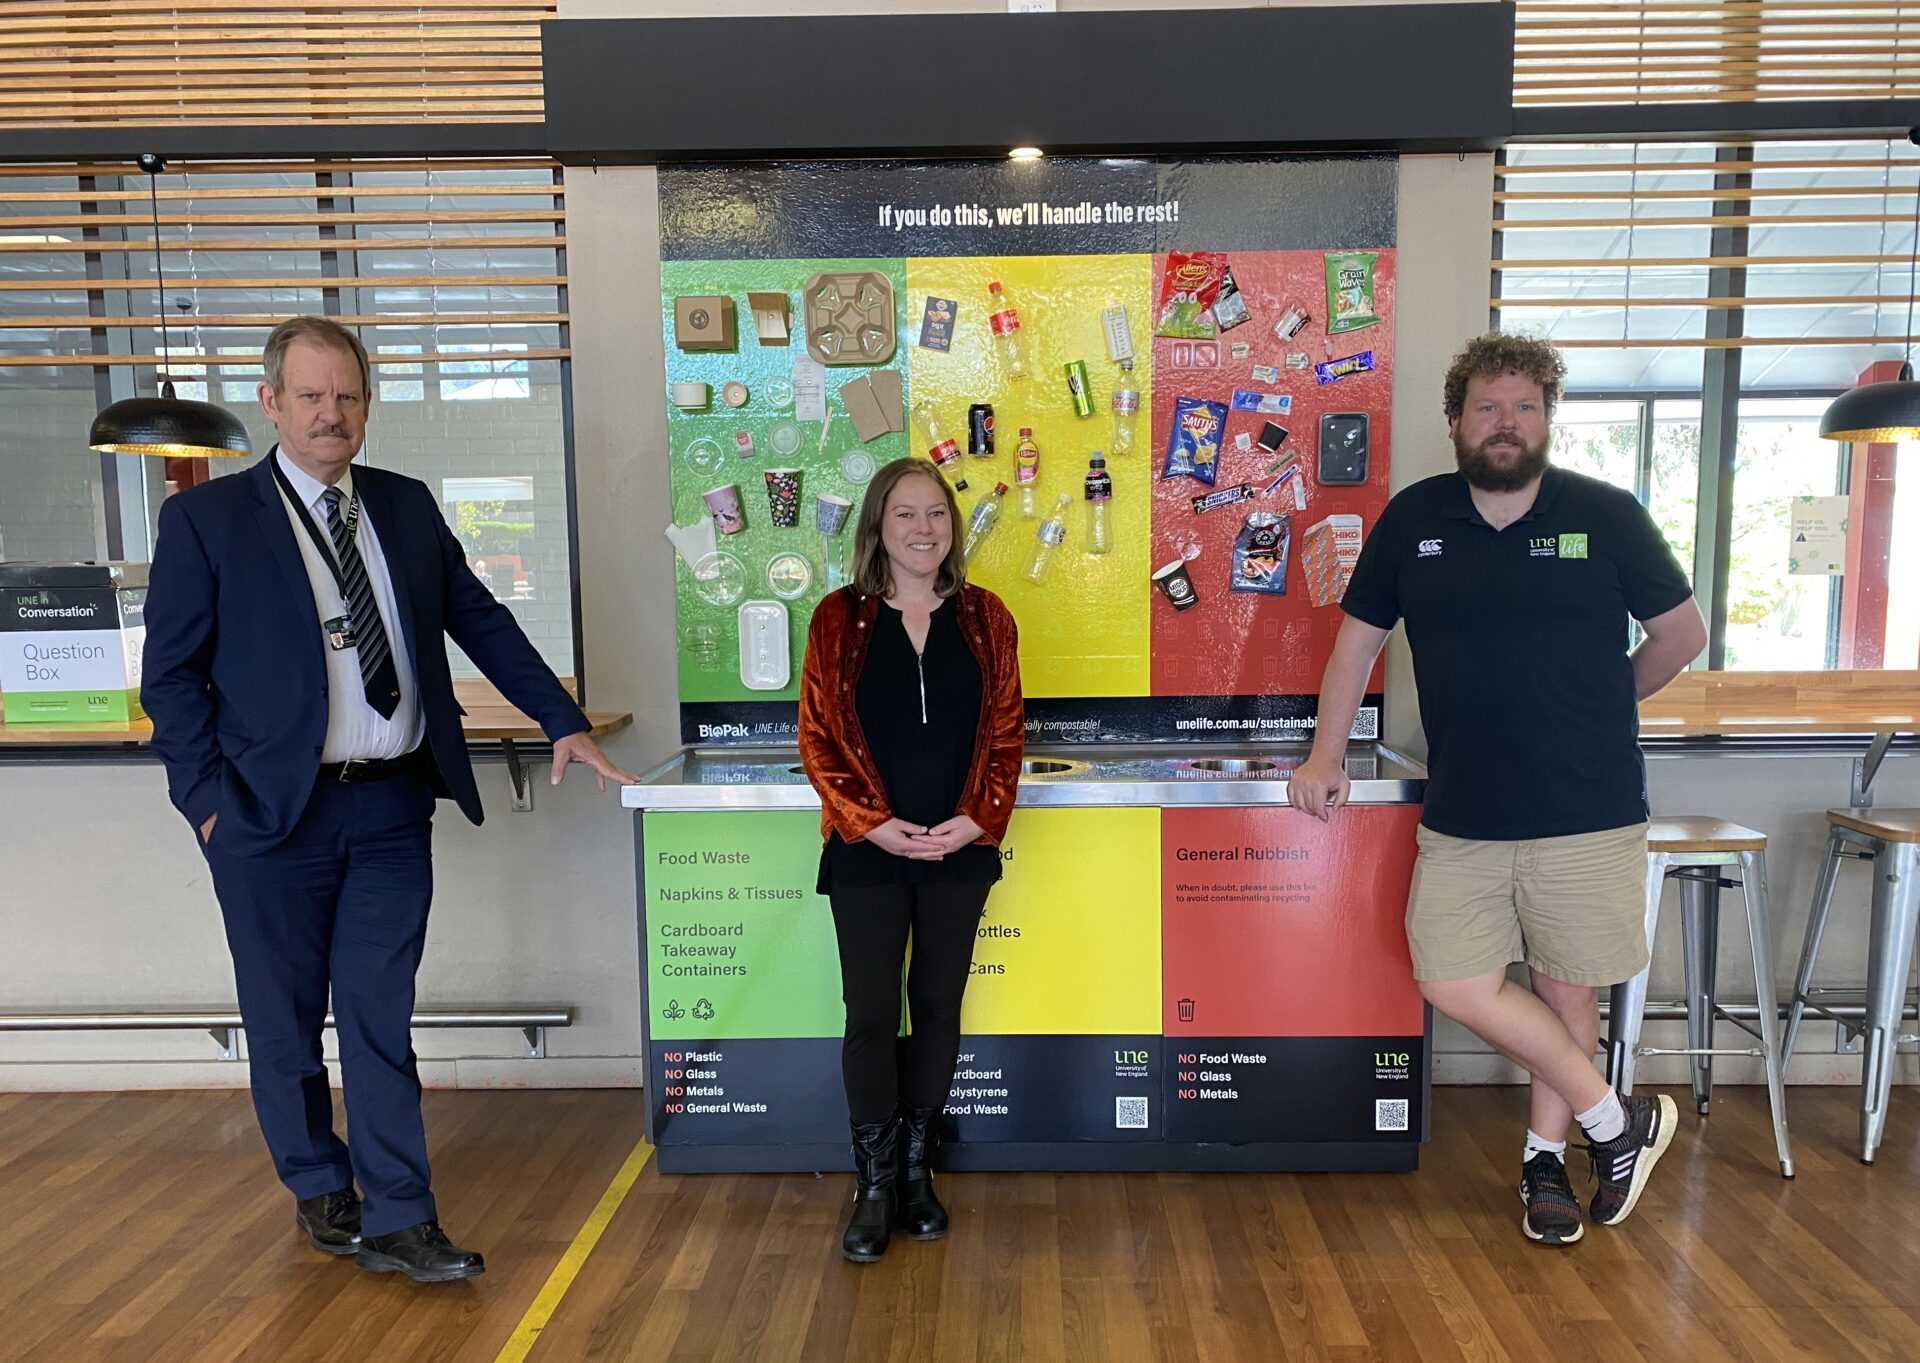 Peter Creamer, Suzannah Mitchell and Scot Leven standing in front of the Waste Wall at UNE Life's Cafe Life, UNE